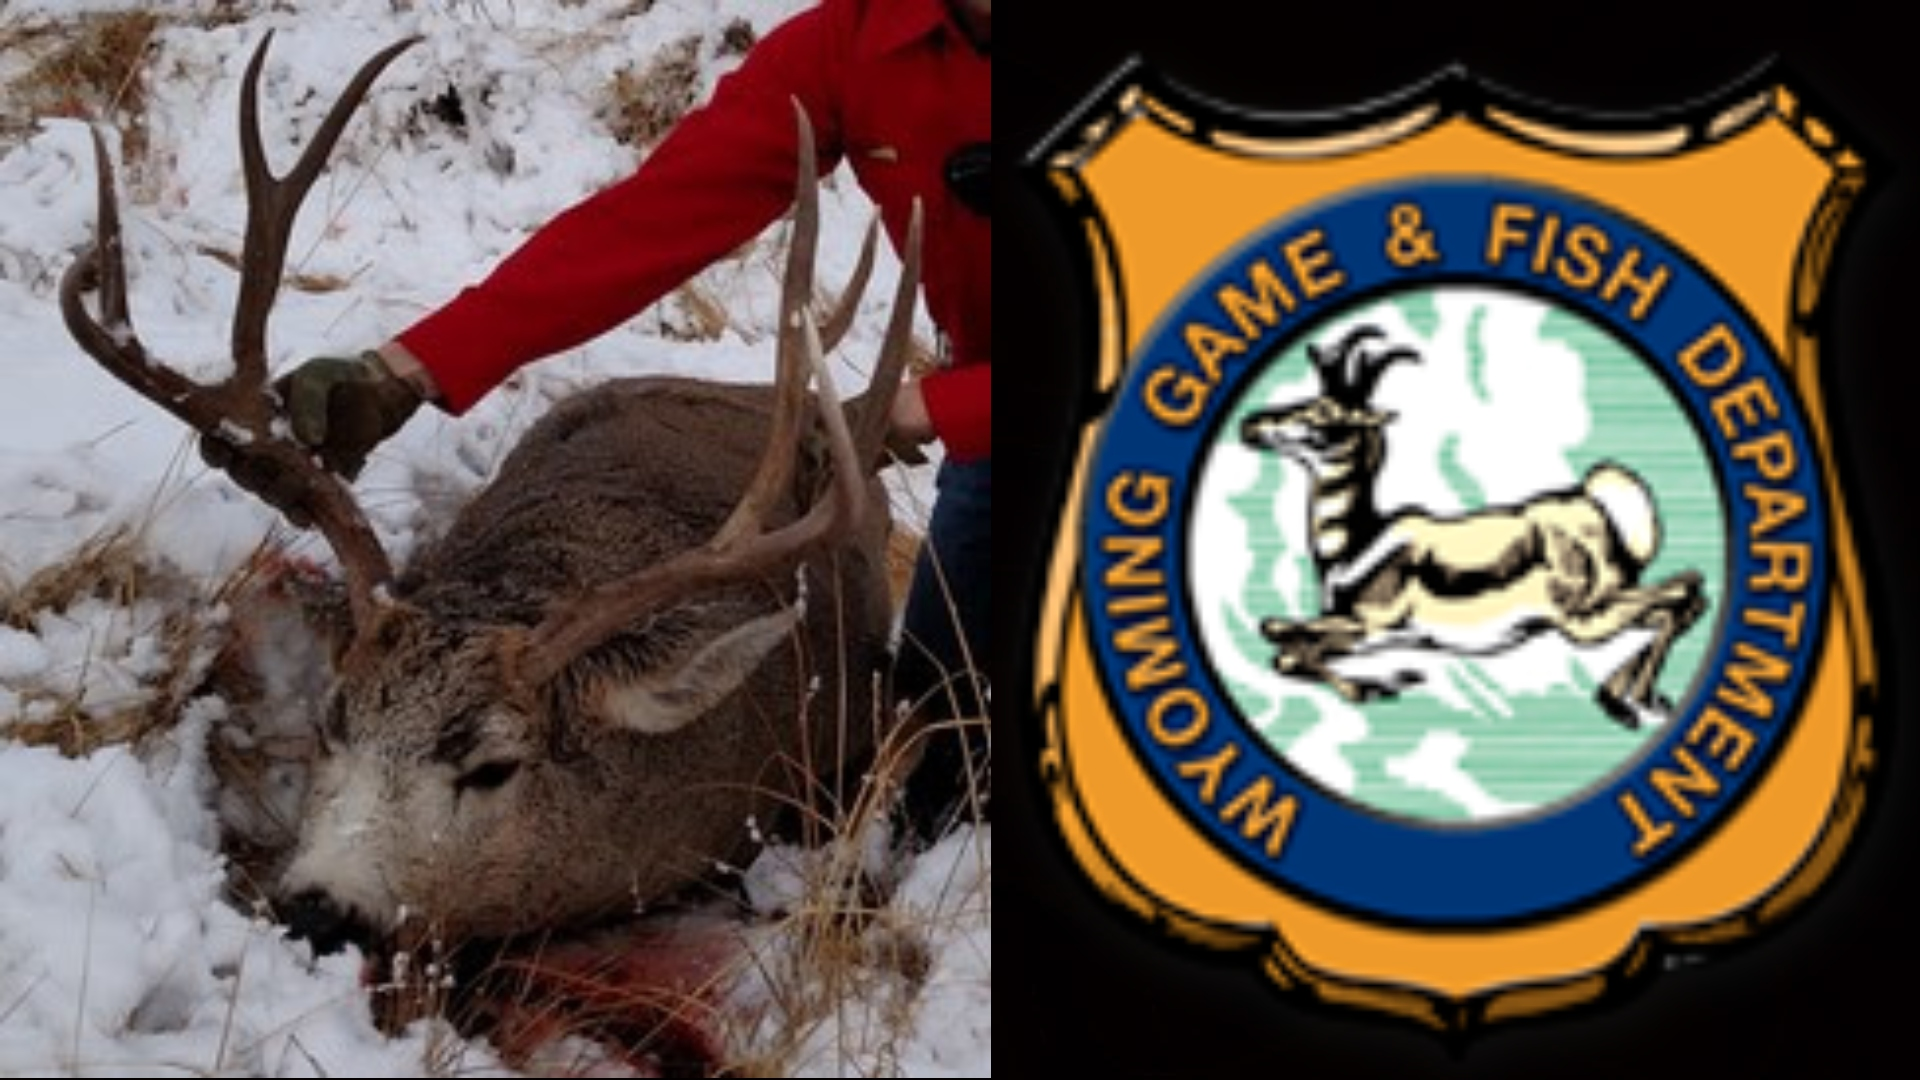 South Dakota residents plead guilty in 2017 Wyoming poaching case